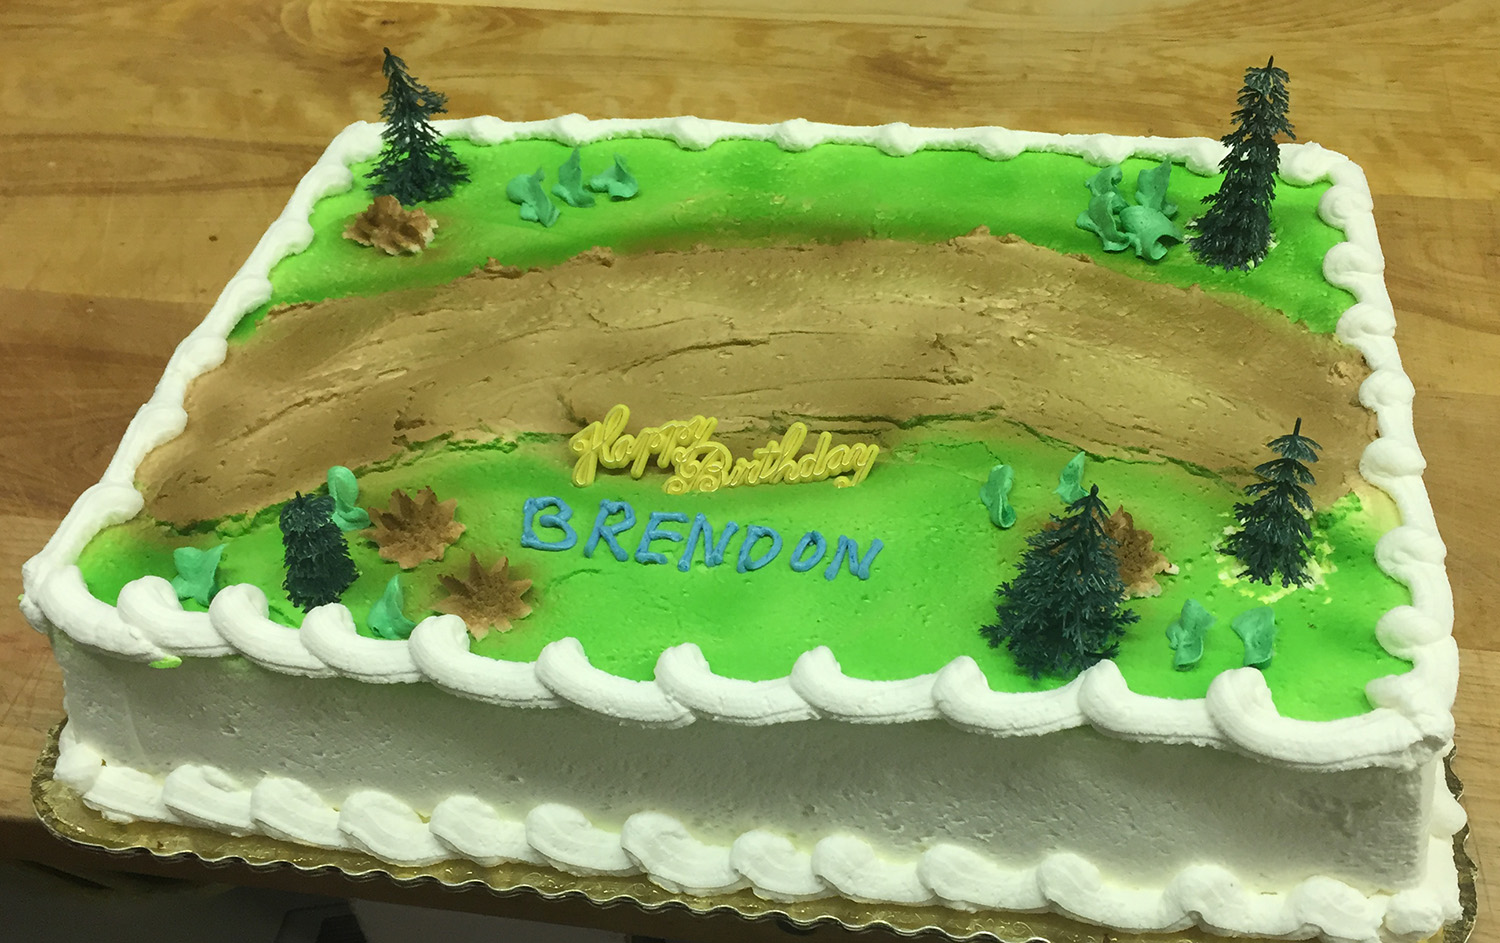 birthday-cake-forest-hmb-bakery.jpg